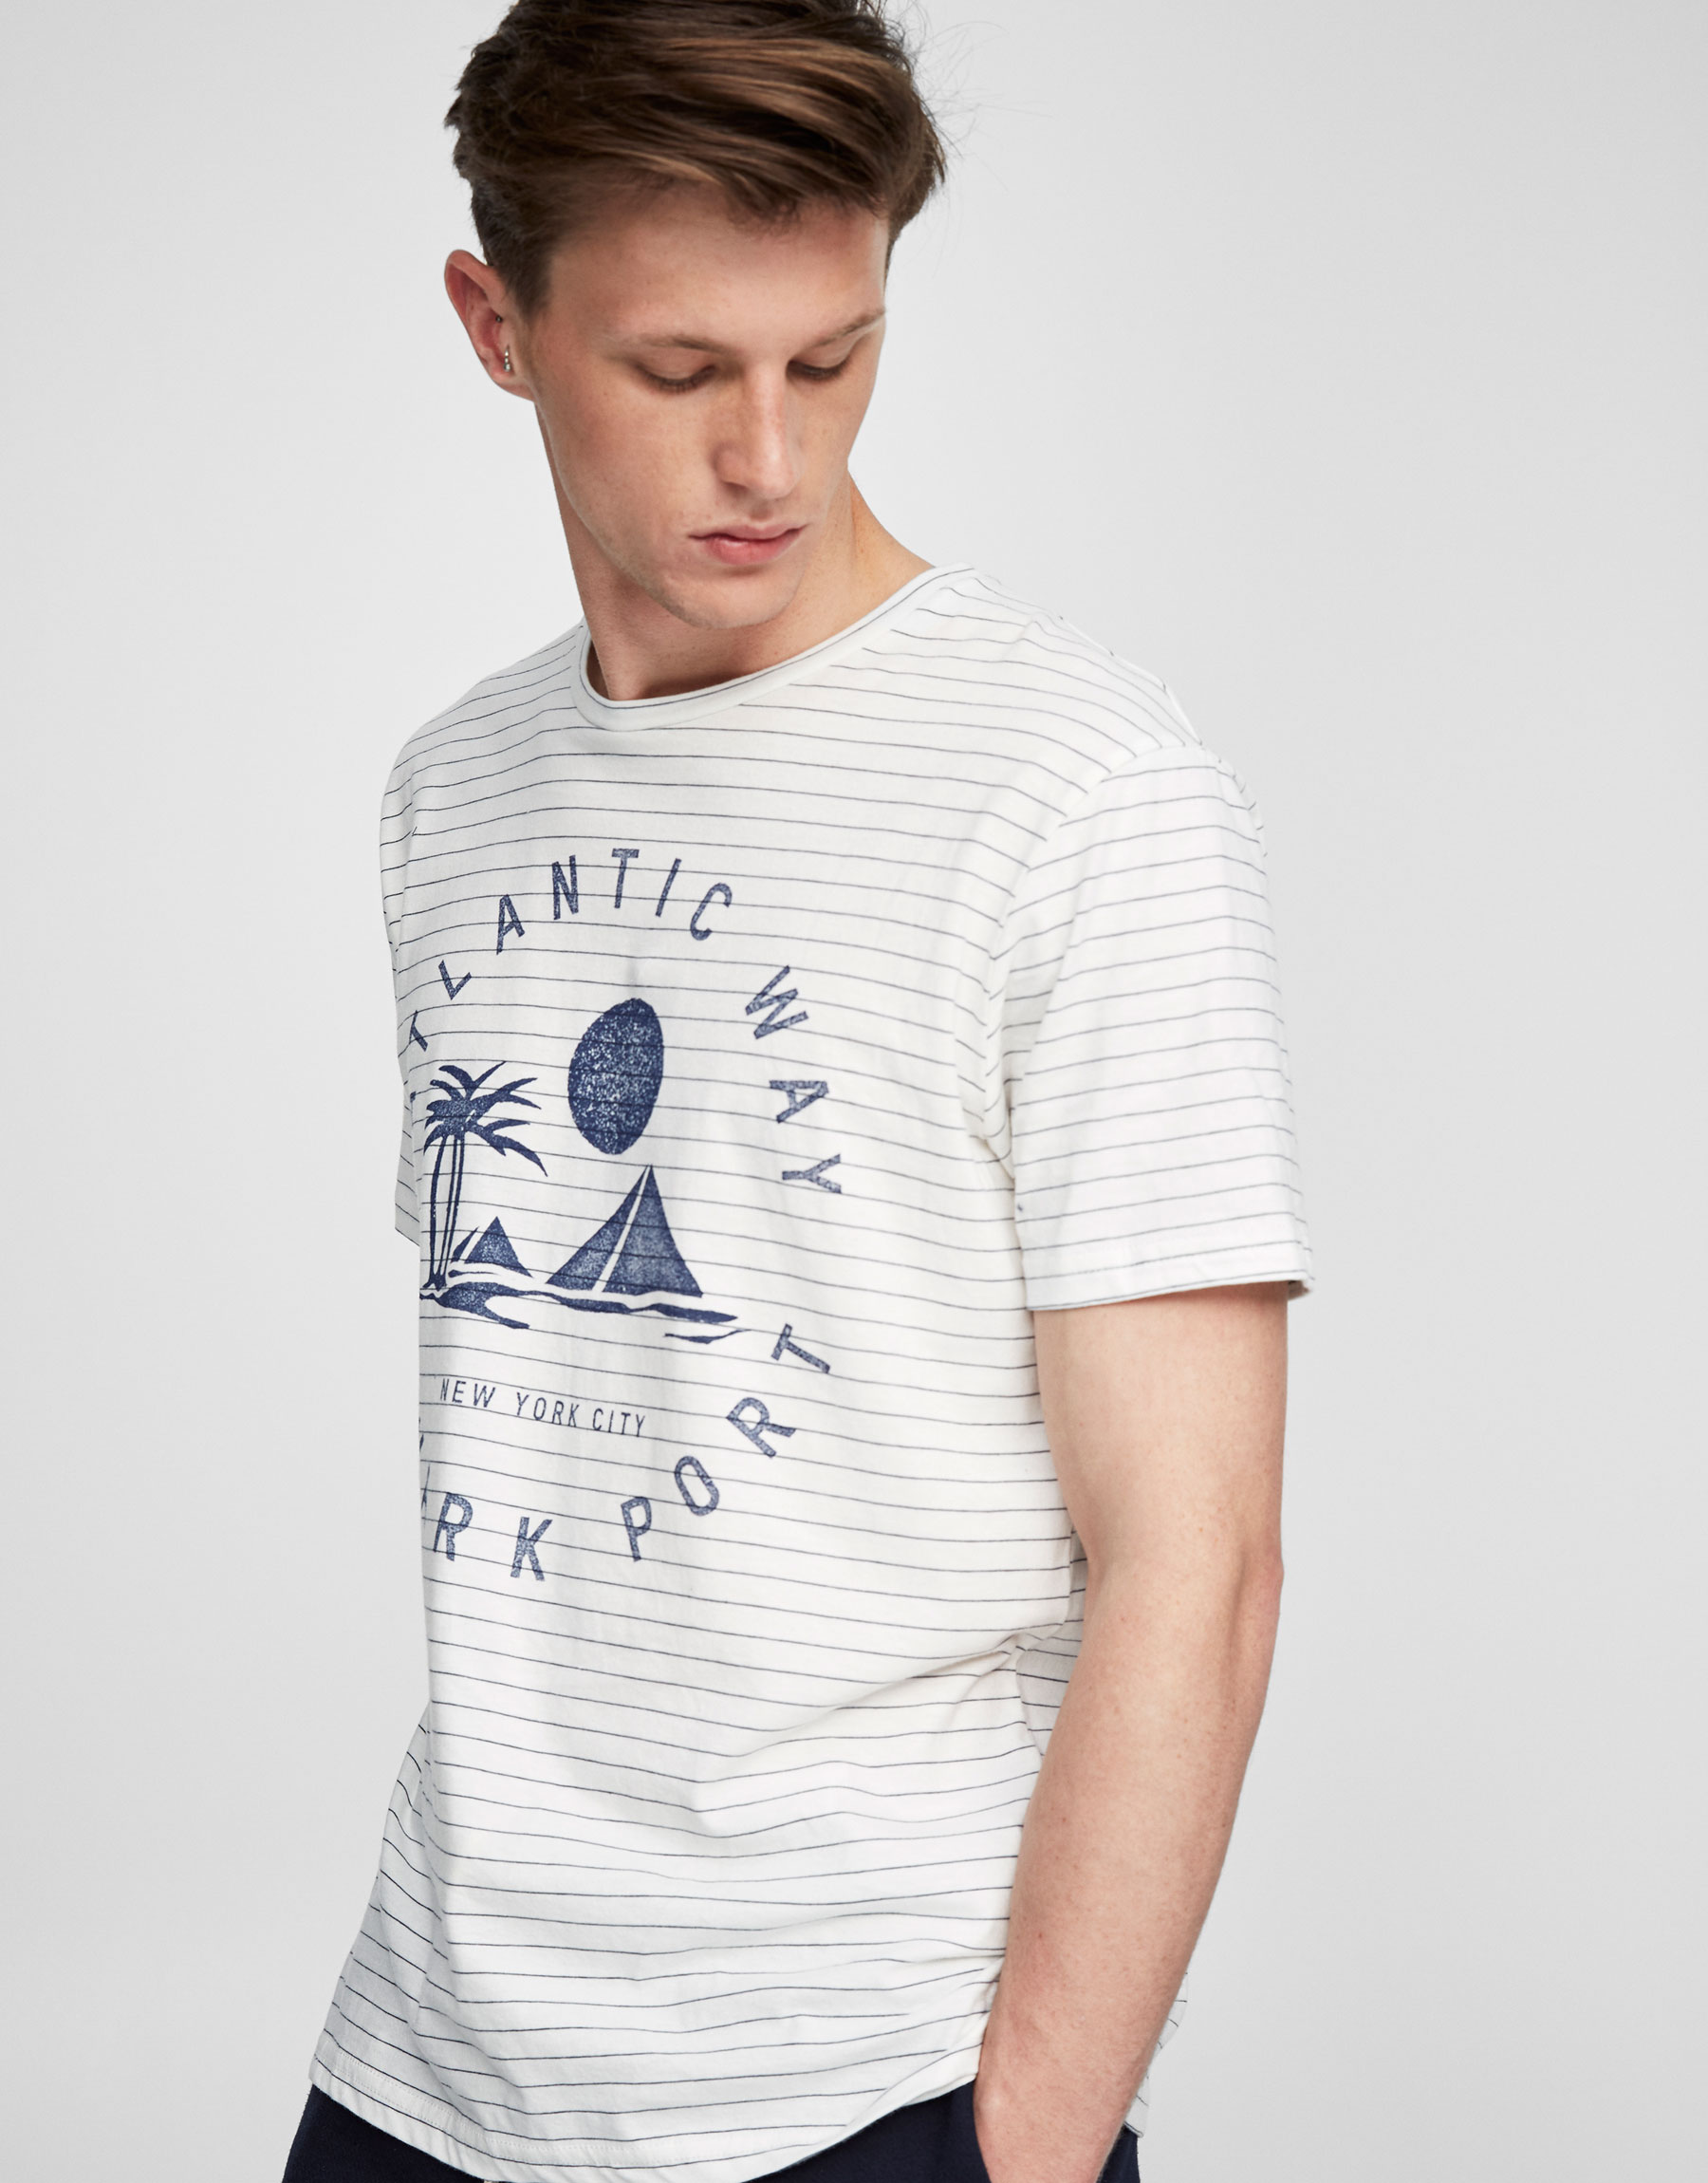 Striped and printed indigo t-shirt